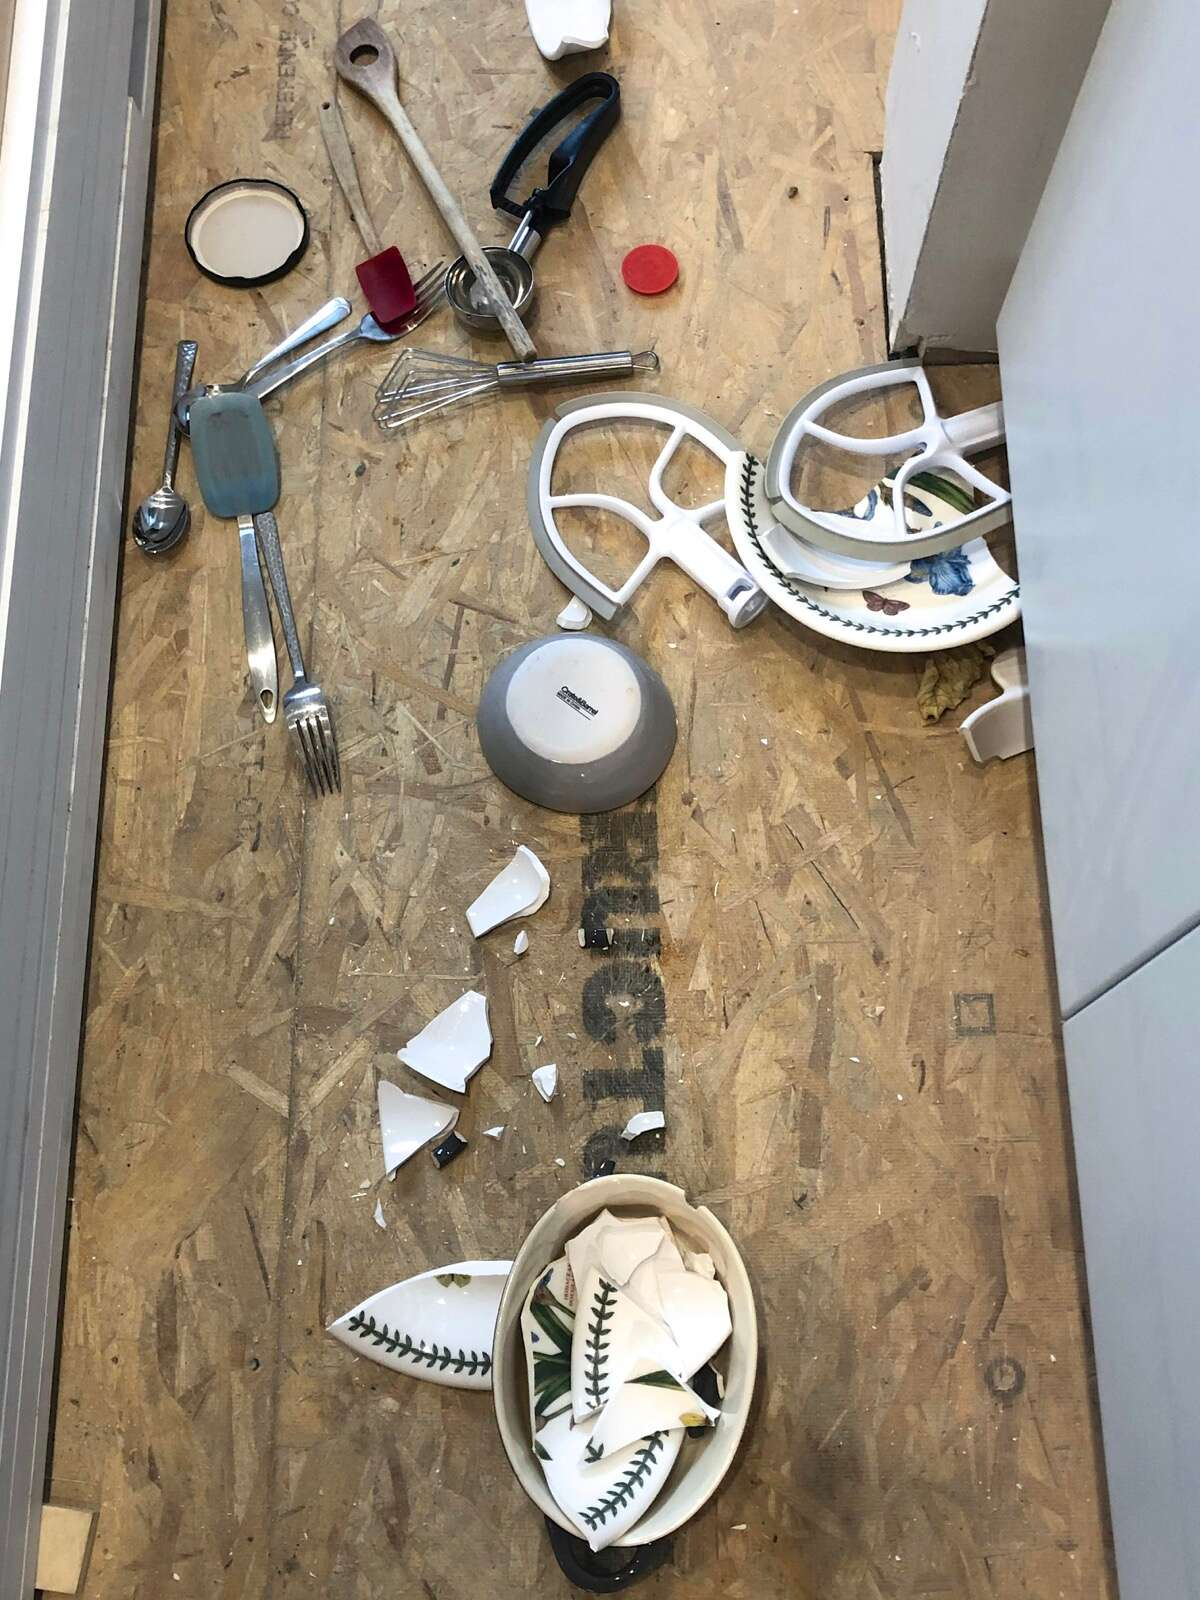 Kitchen floor with broken crockery, spilled silverware, and KitchenAid mixer attachments.